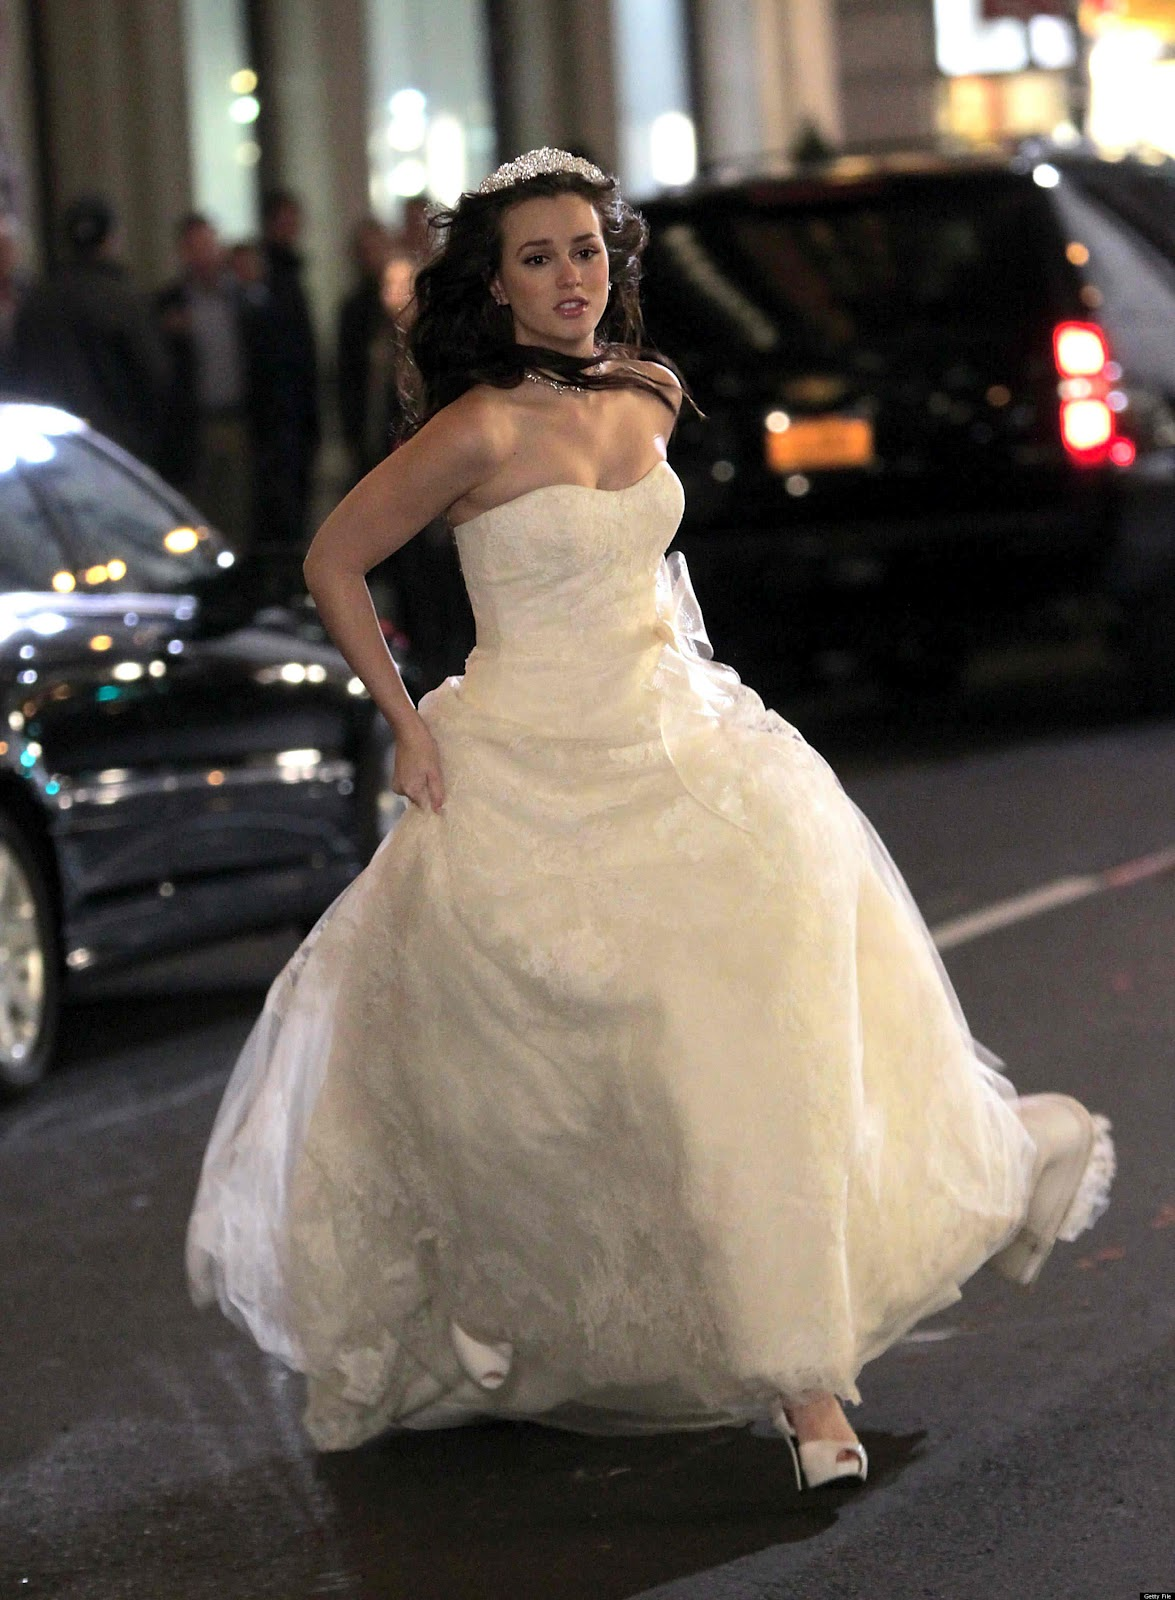 Gossip Girl Season 5 Royal Wedding Dress - Style Vanity